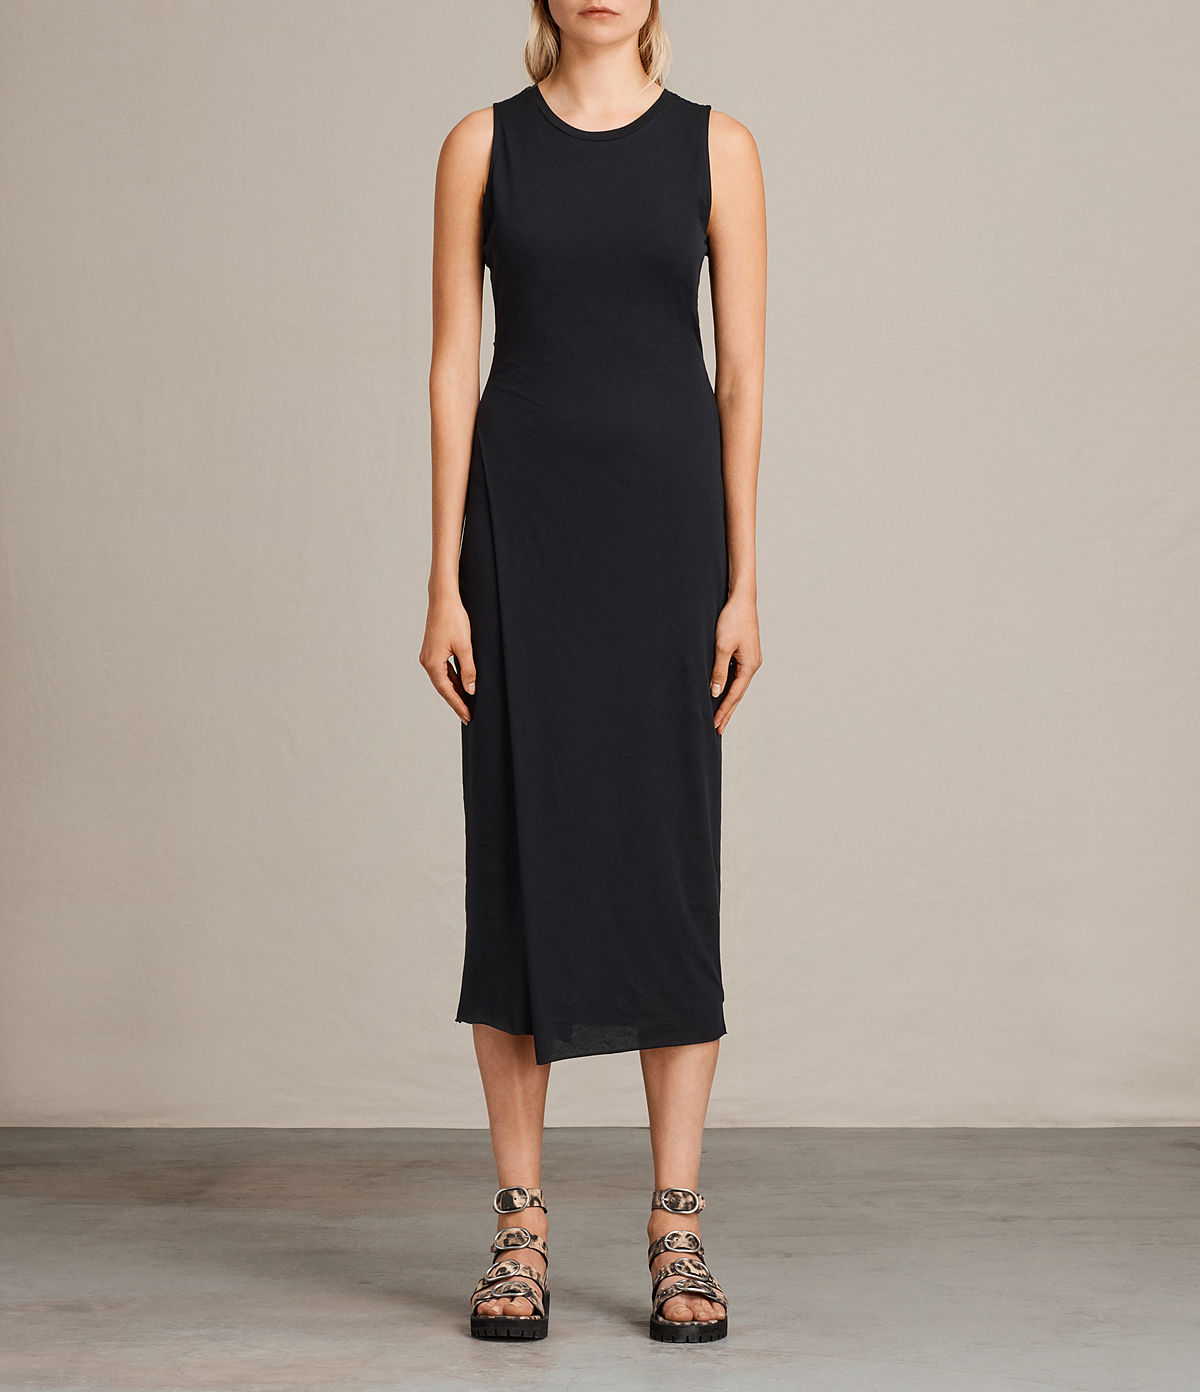 All Saints DE Naia Dress